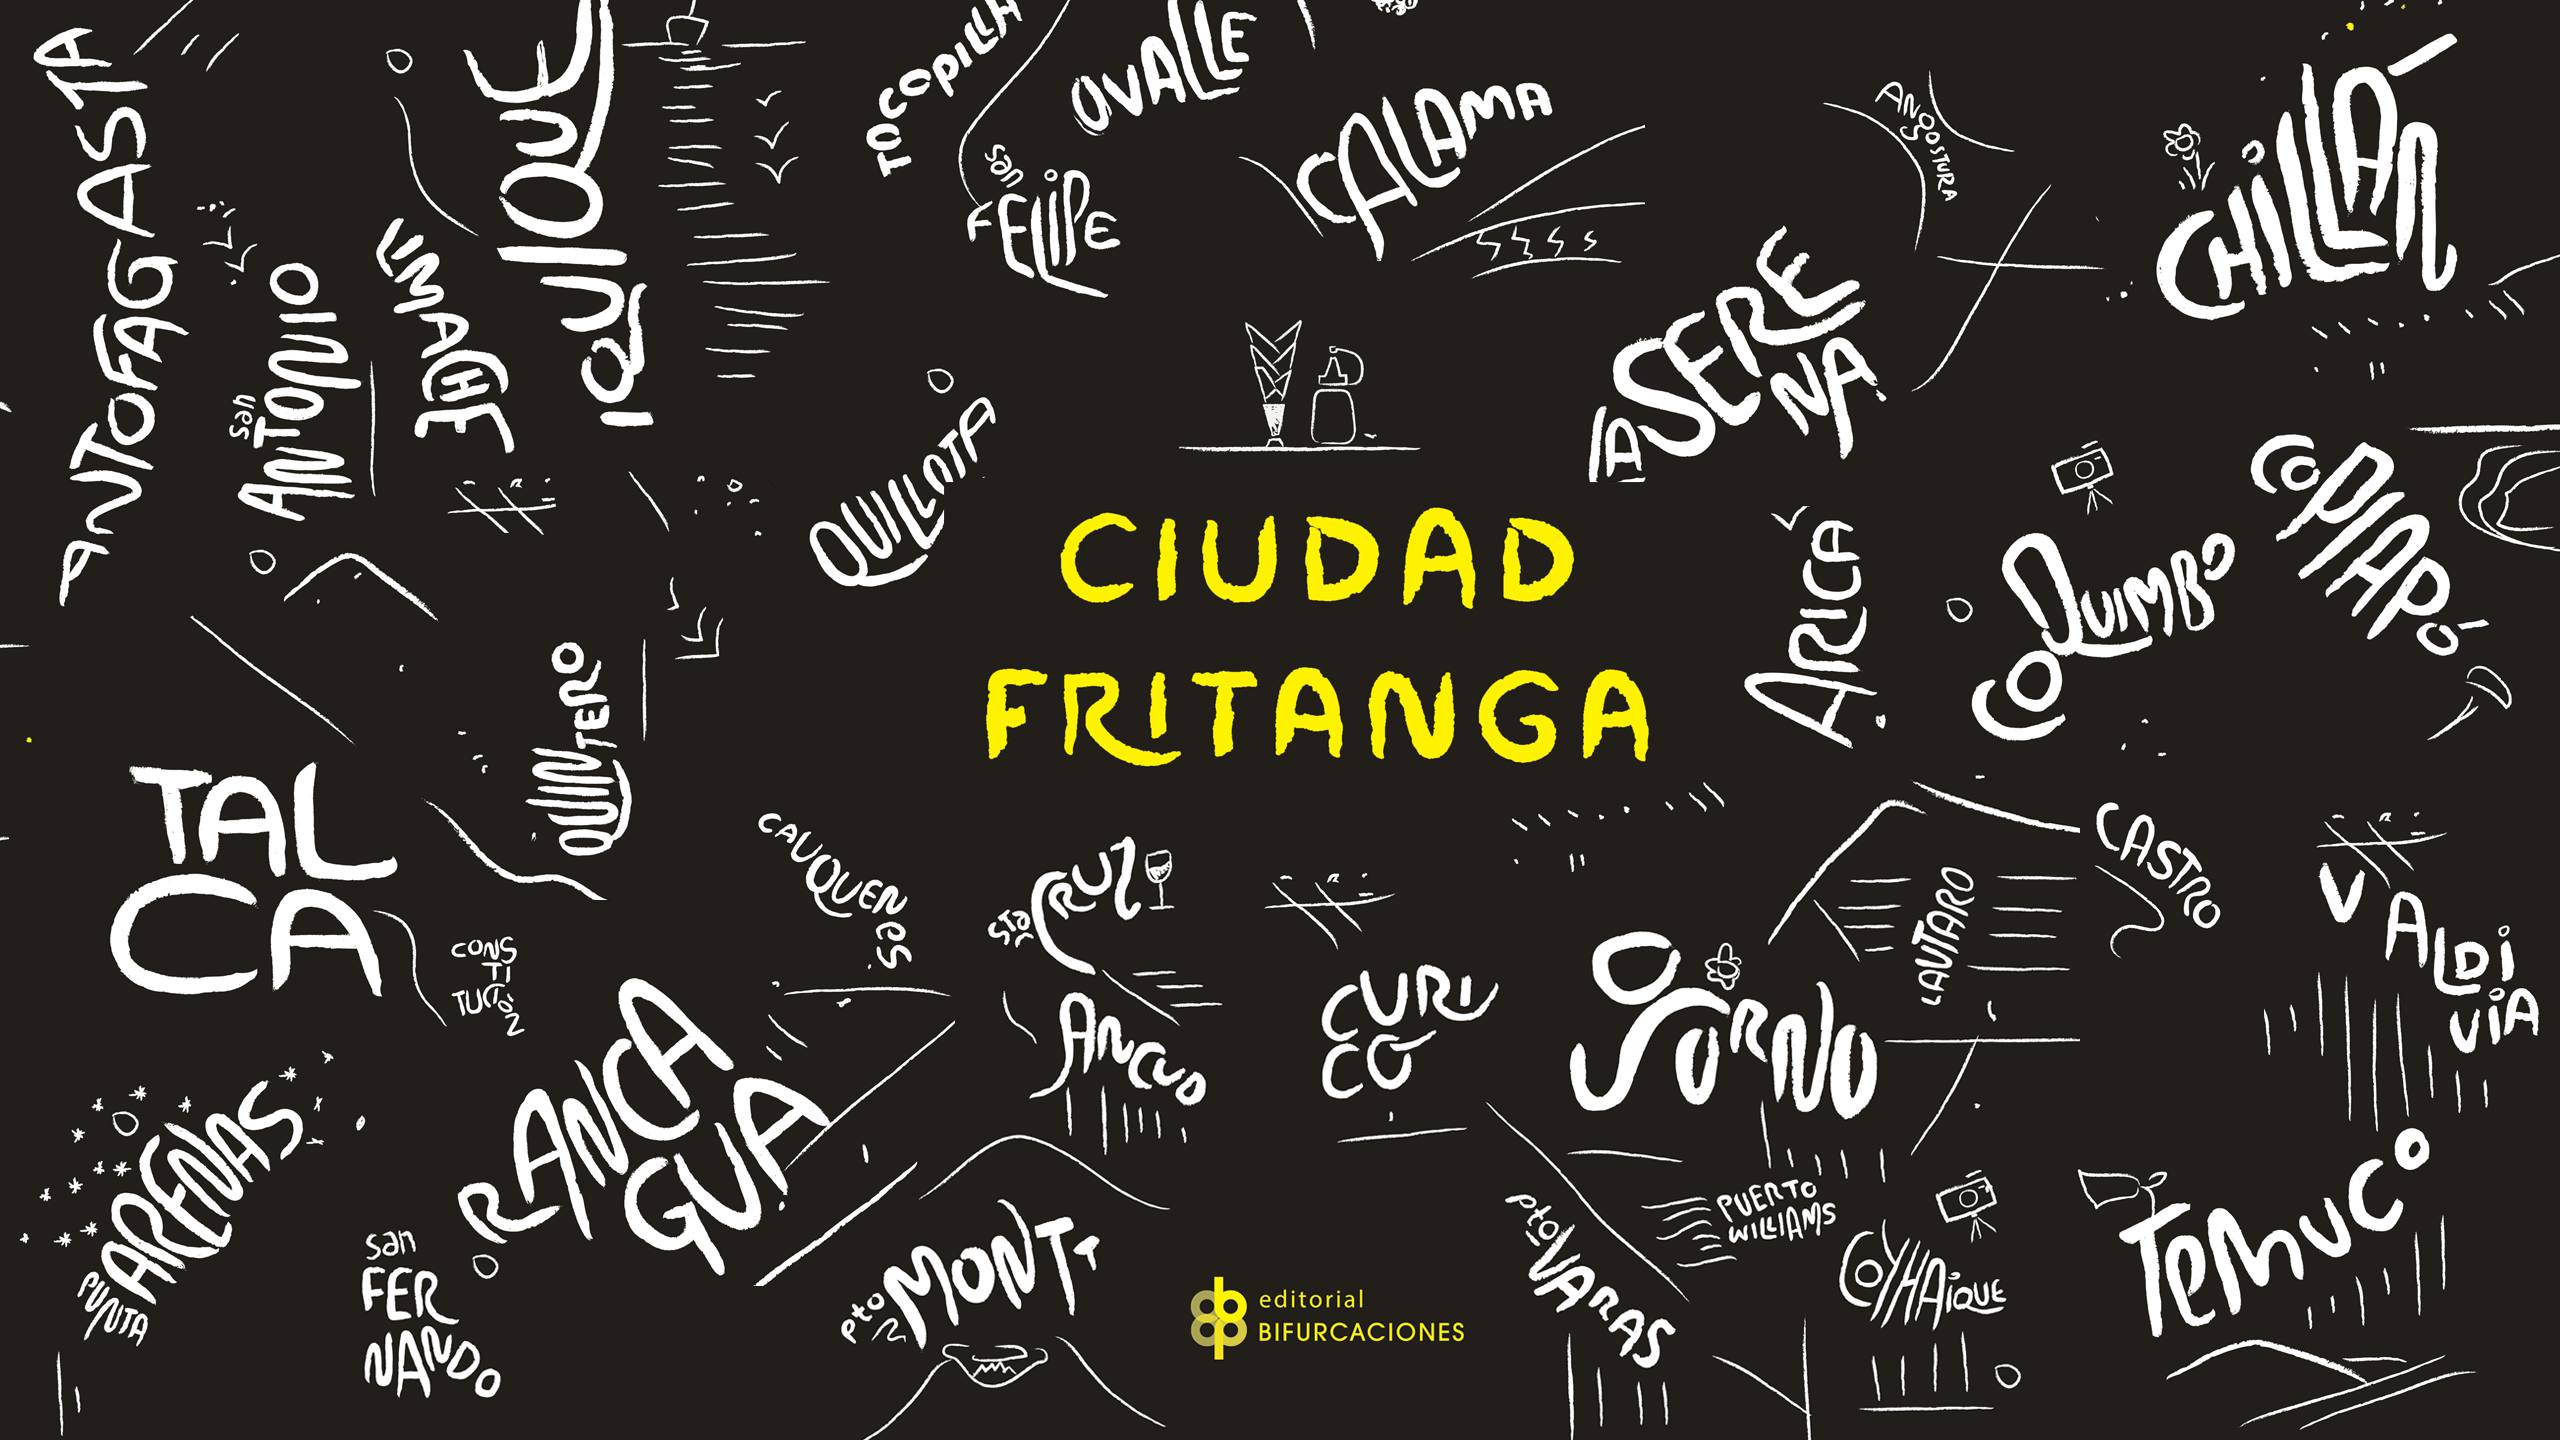 fritanga_wallpaper